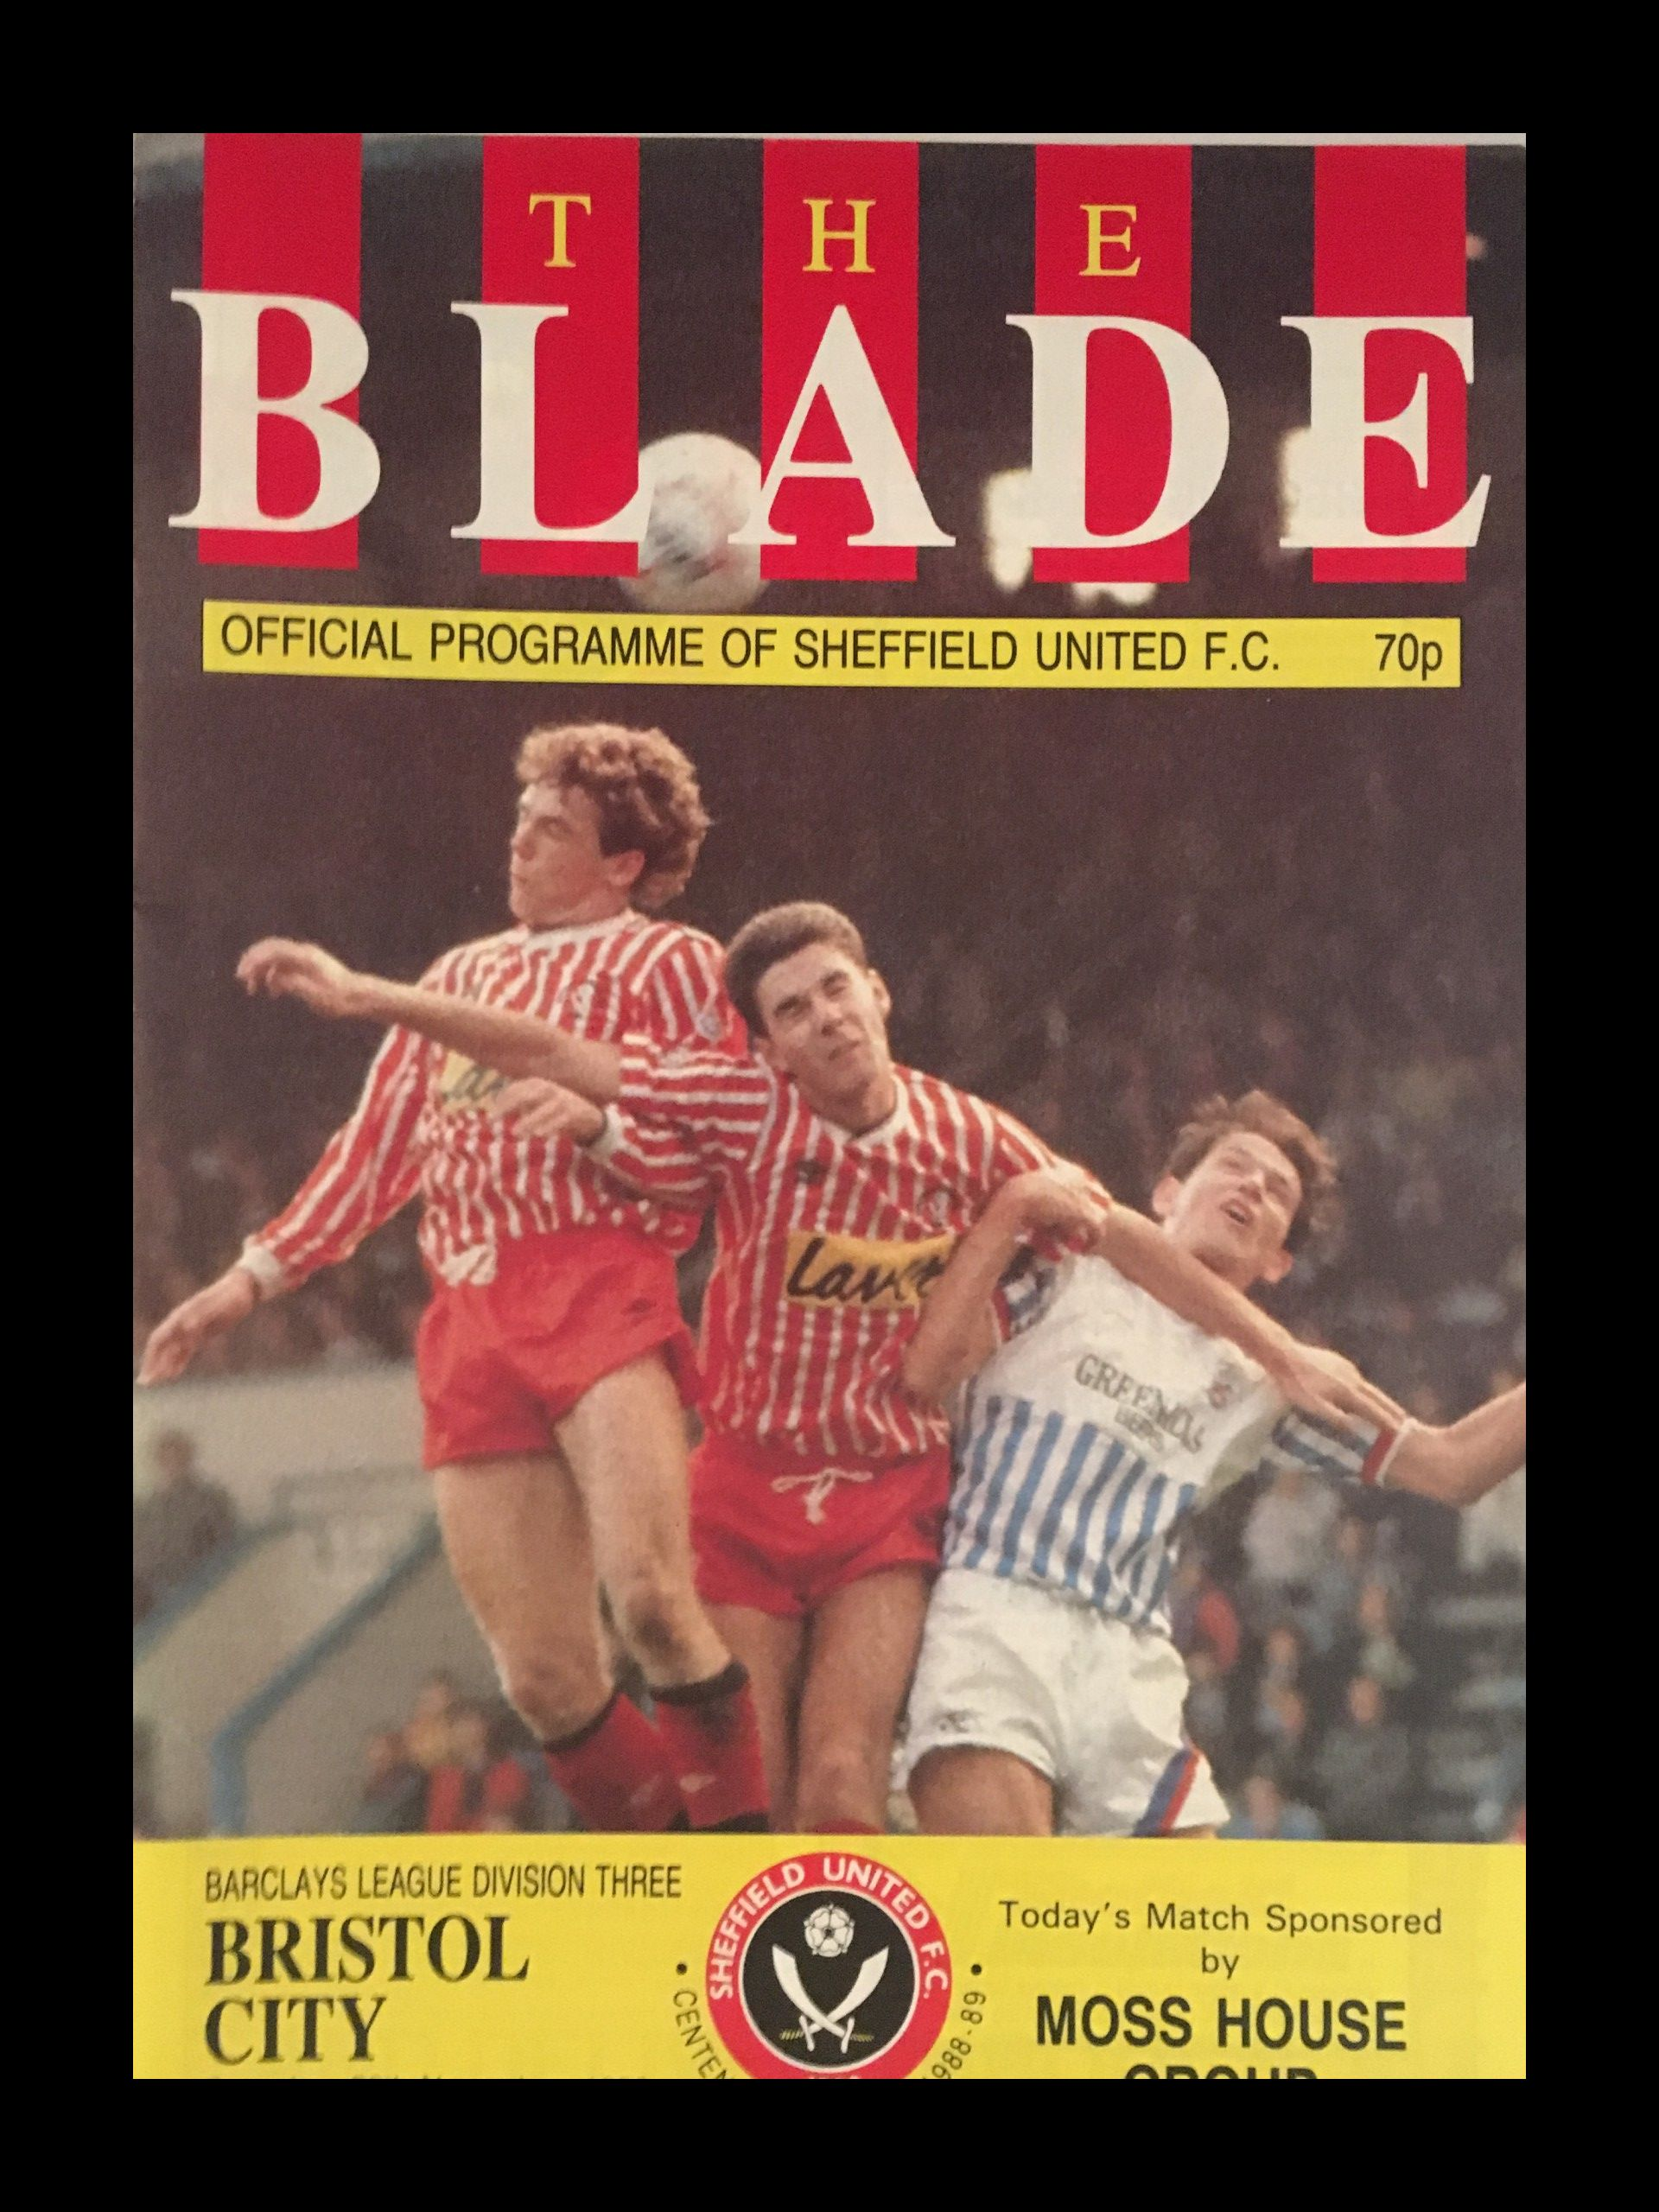 Sheffield United v Bristol City 26-11-1988 Programme